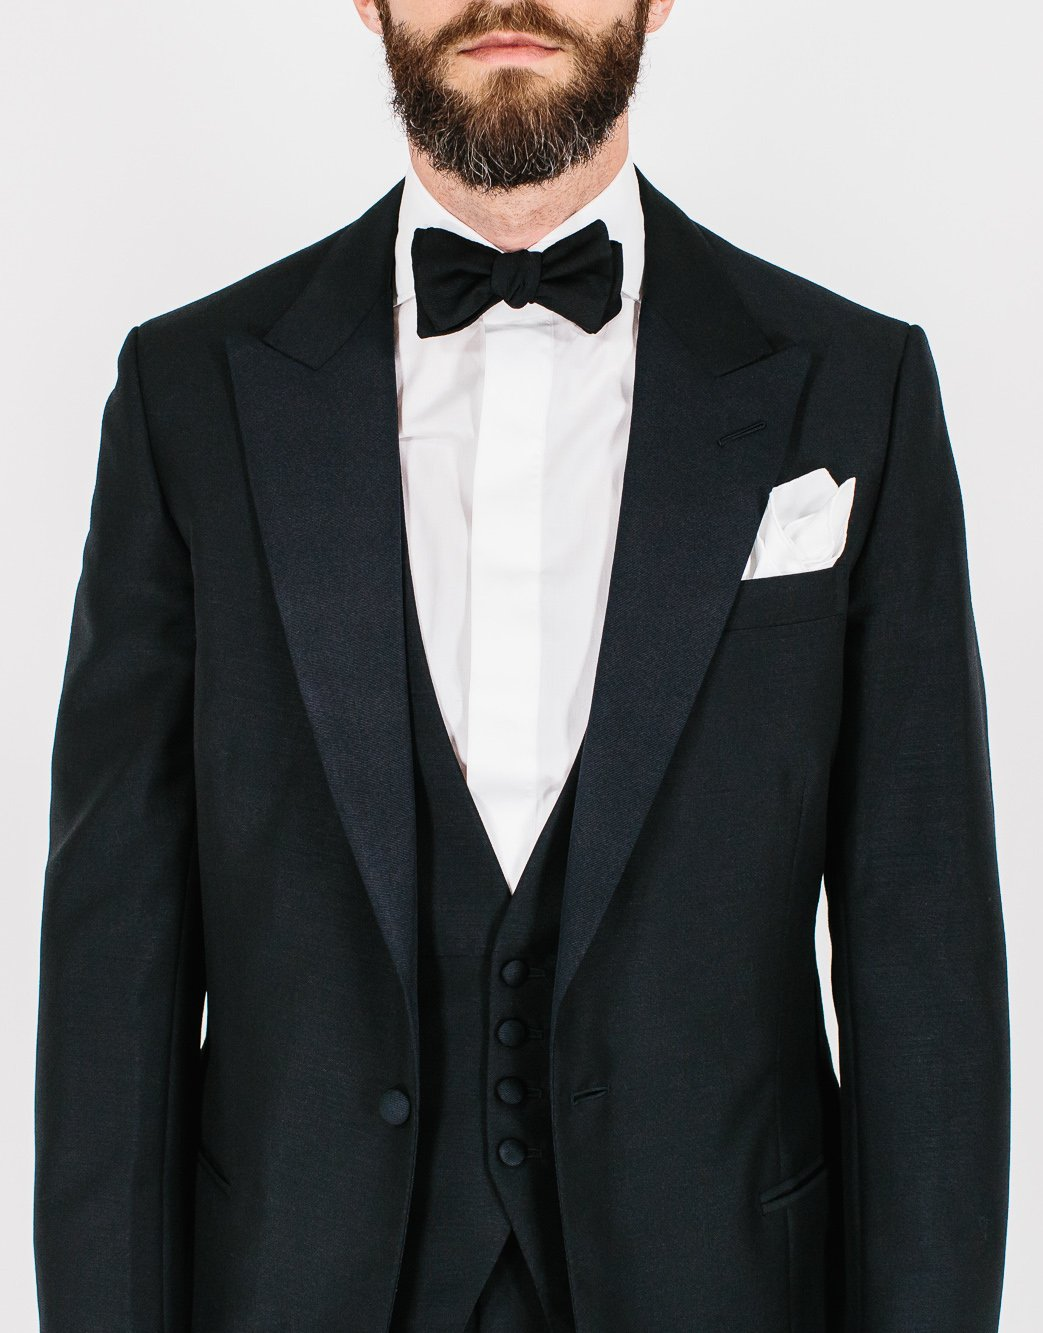 DJ-11 MENS FORMAL BROMLEY DOUBLE BREASTED DINNER JACKET,EVENING WEAR